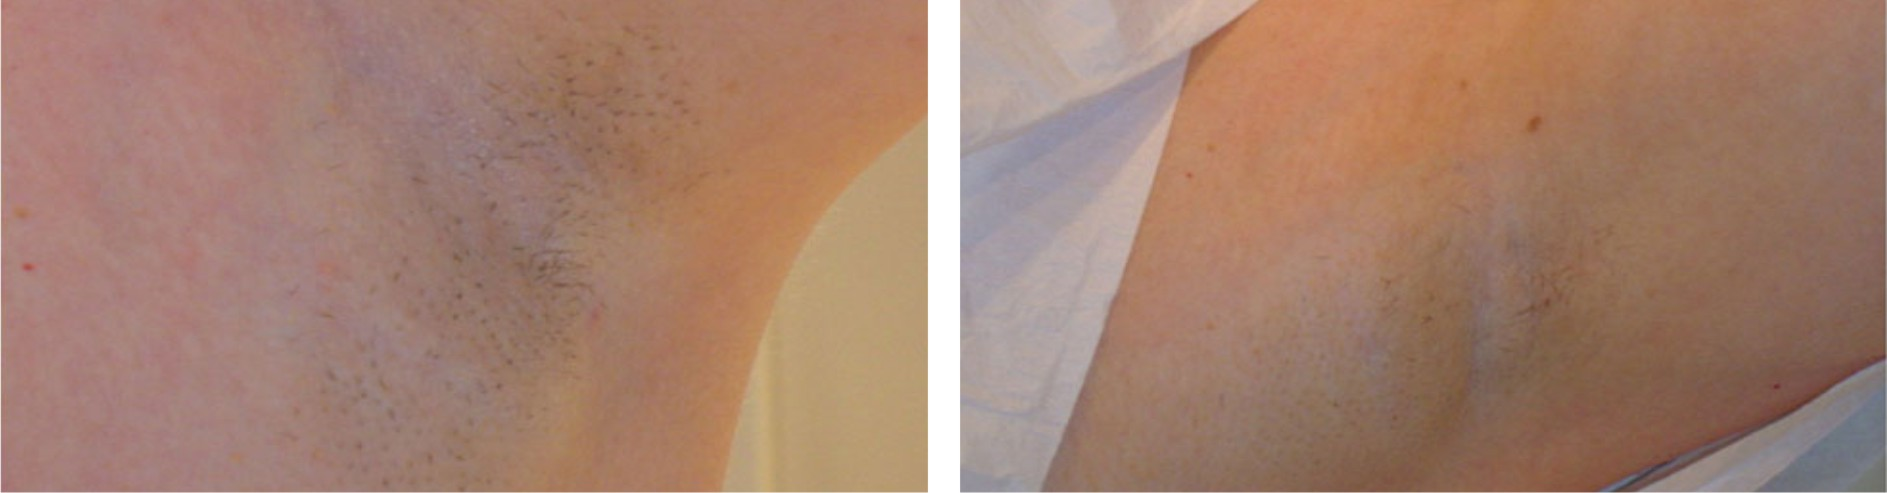 Laser Hair Removal Image Three